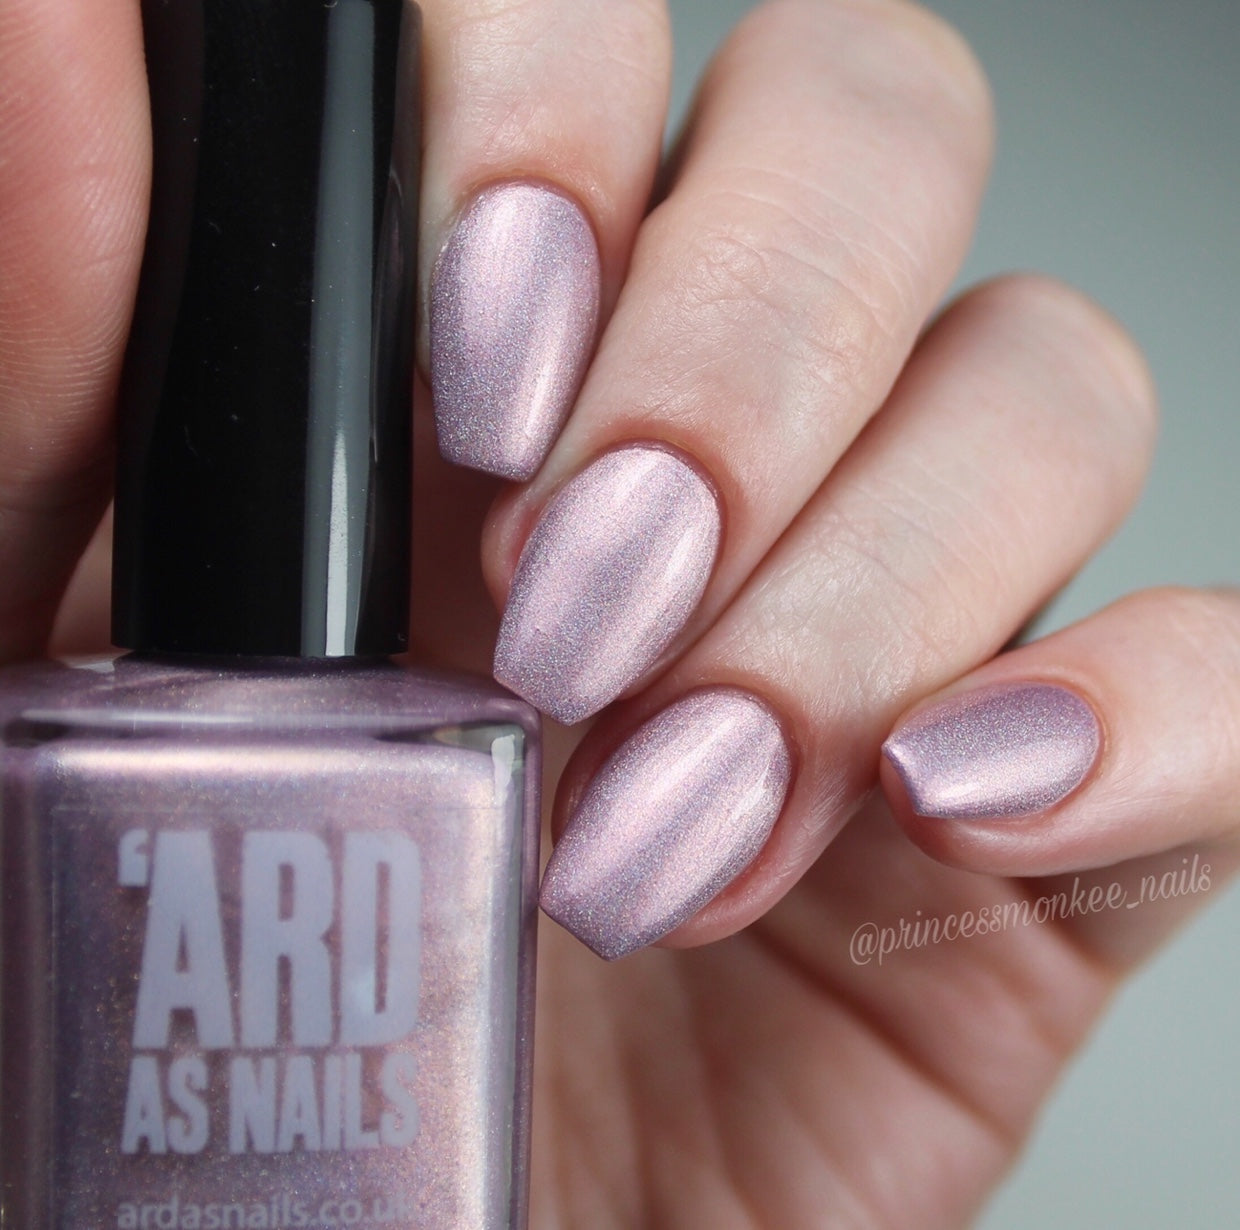 'Ard As Nails - Soft Hues - Rock Candy